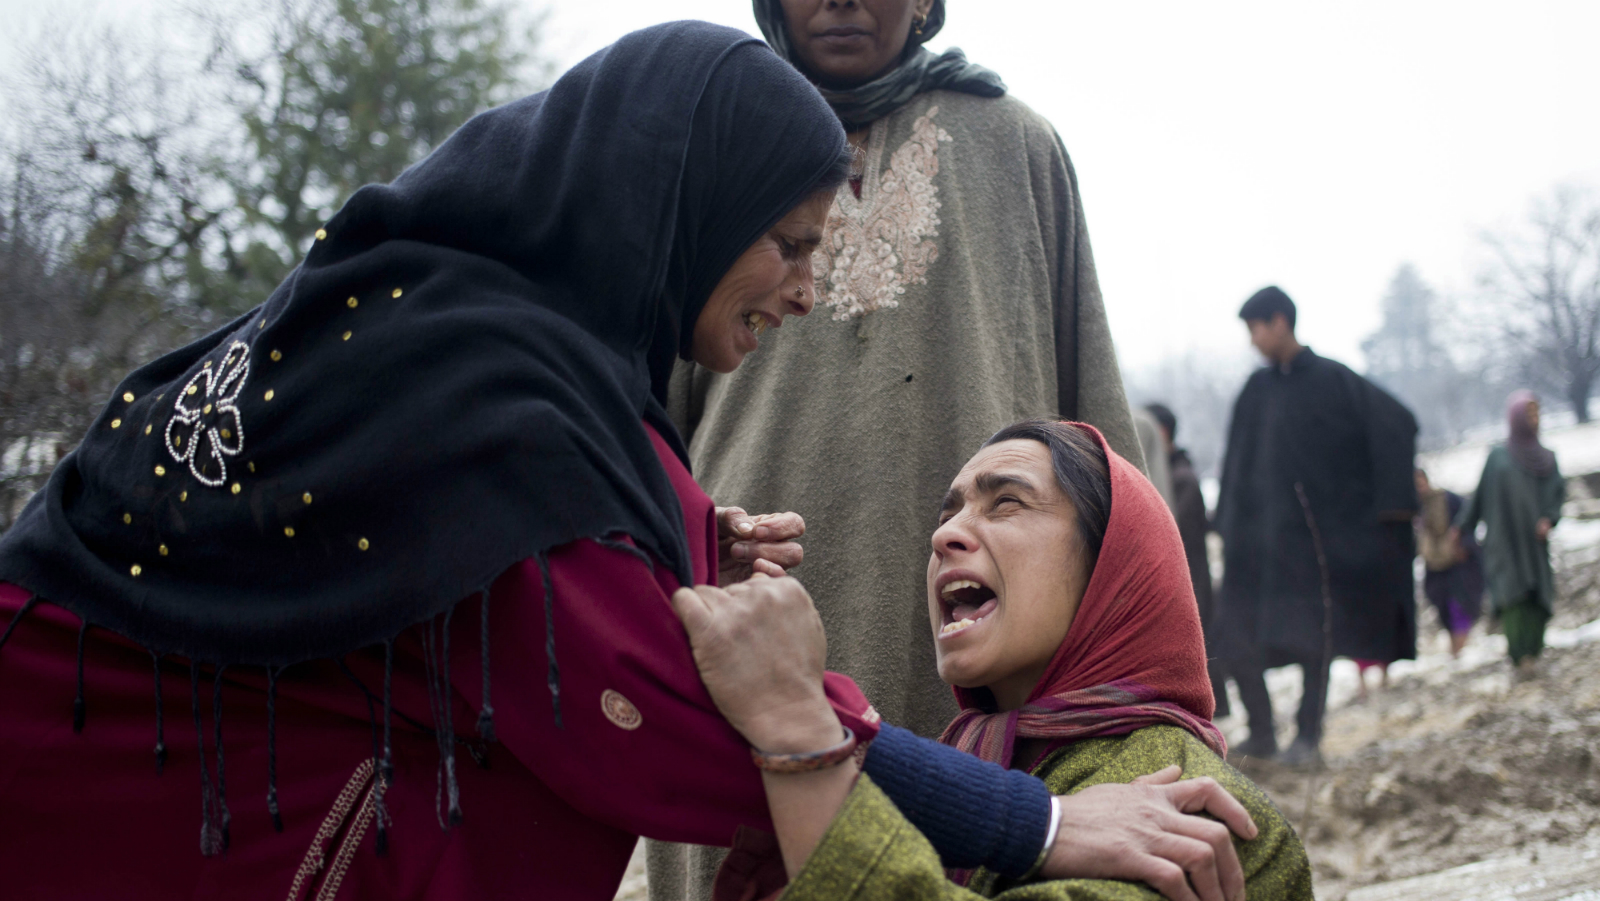 An unidentified woman, left, comforts a relative of landslide victims in village of Laden some 45 Kilometers (28 miles) west of Srinagar, Indian-controlled Kashmir, Monday, March 30, 2015. Hundreds of Kashmiris in both India and Pakistan moved to higher ground Monday as rain-swollen rivers swamped parts of the disputed Himalayan region placed under an emergency flood alert just six months after some 600 people died in flooding that left the region in shambles. (AP Photo/Dar Yasin)